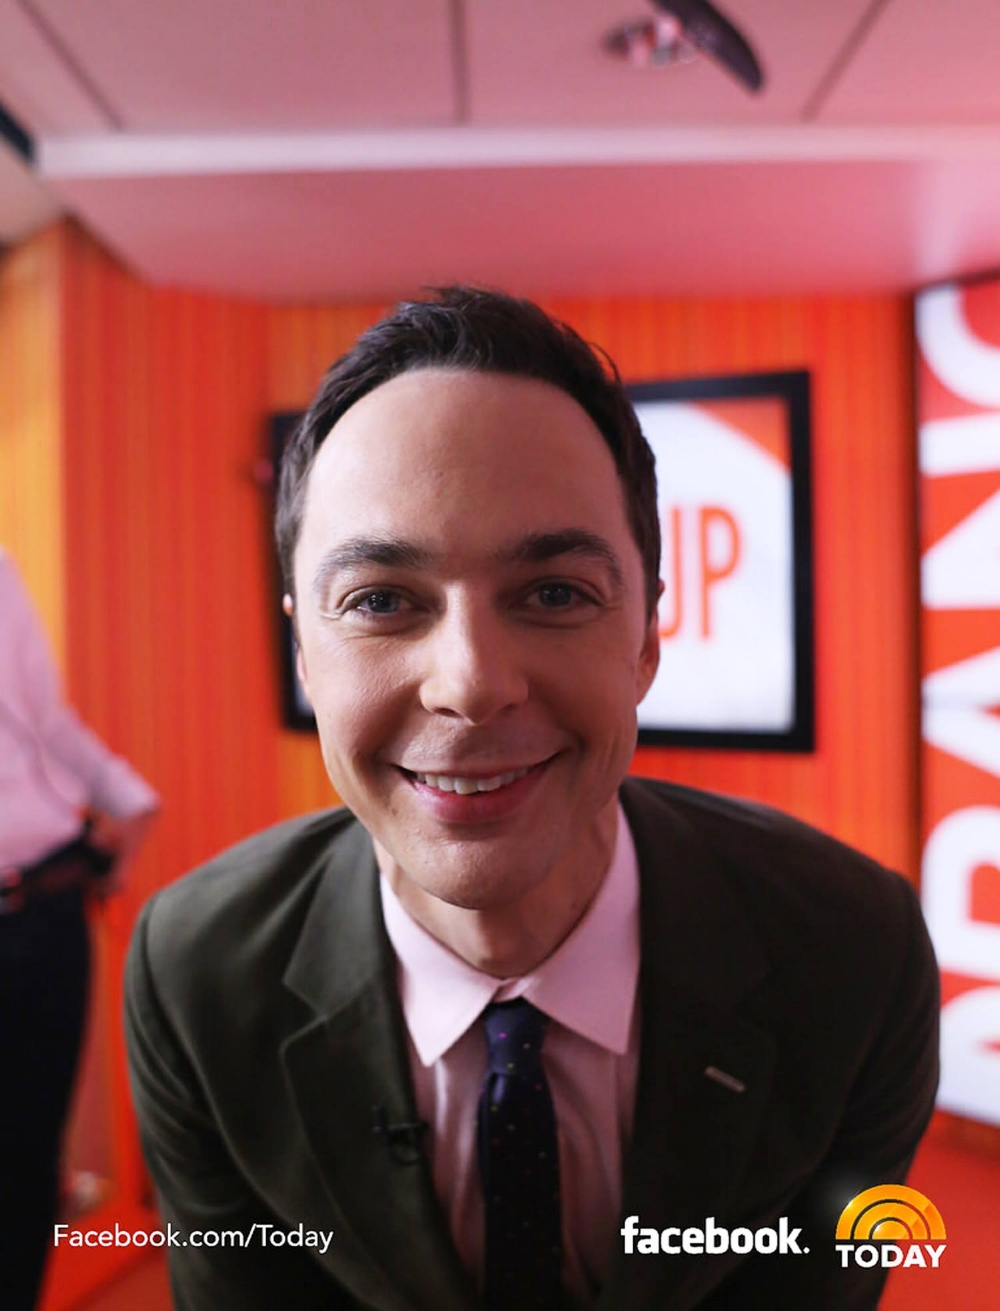 Jim Parson's using SELFIE backstage at the Today Show